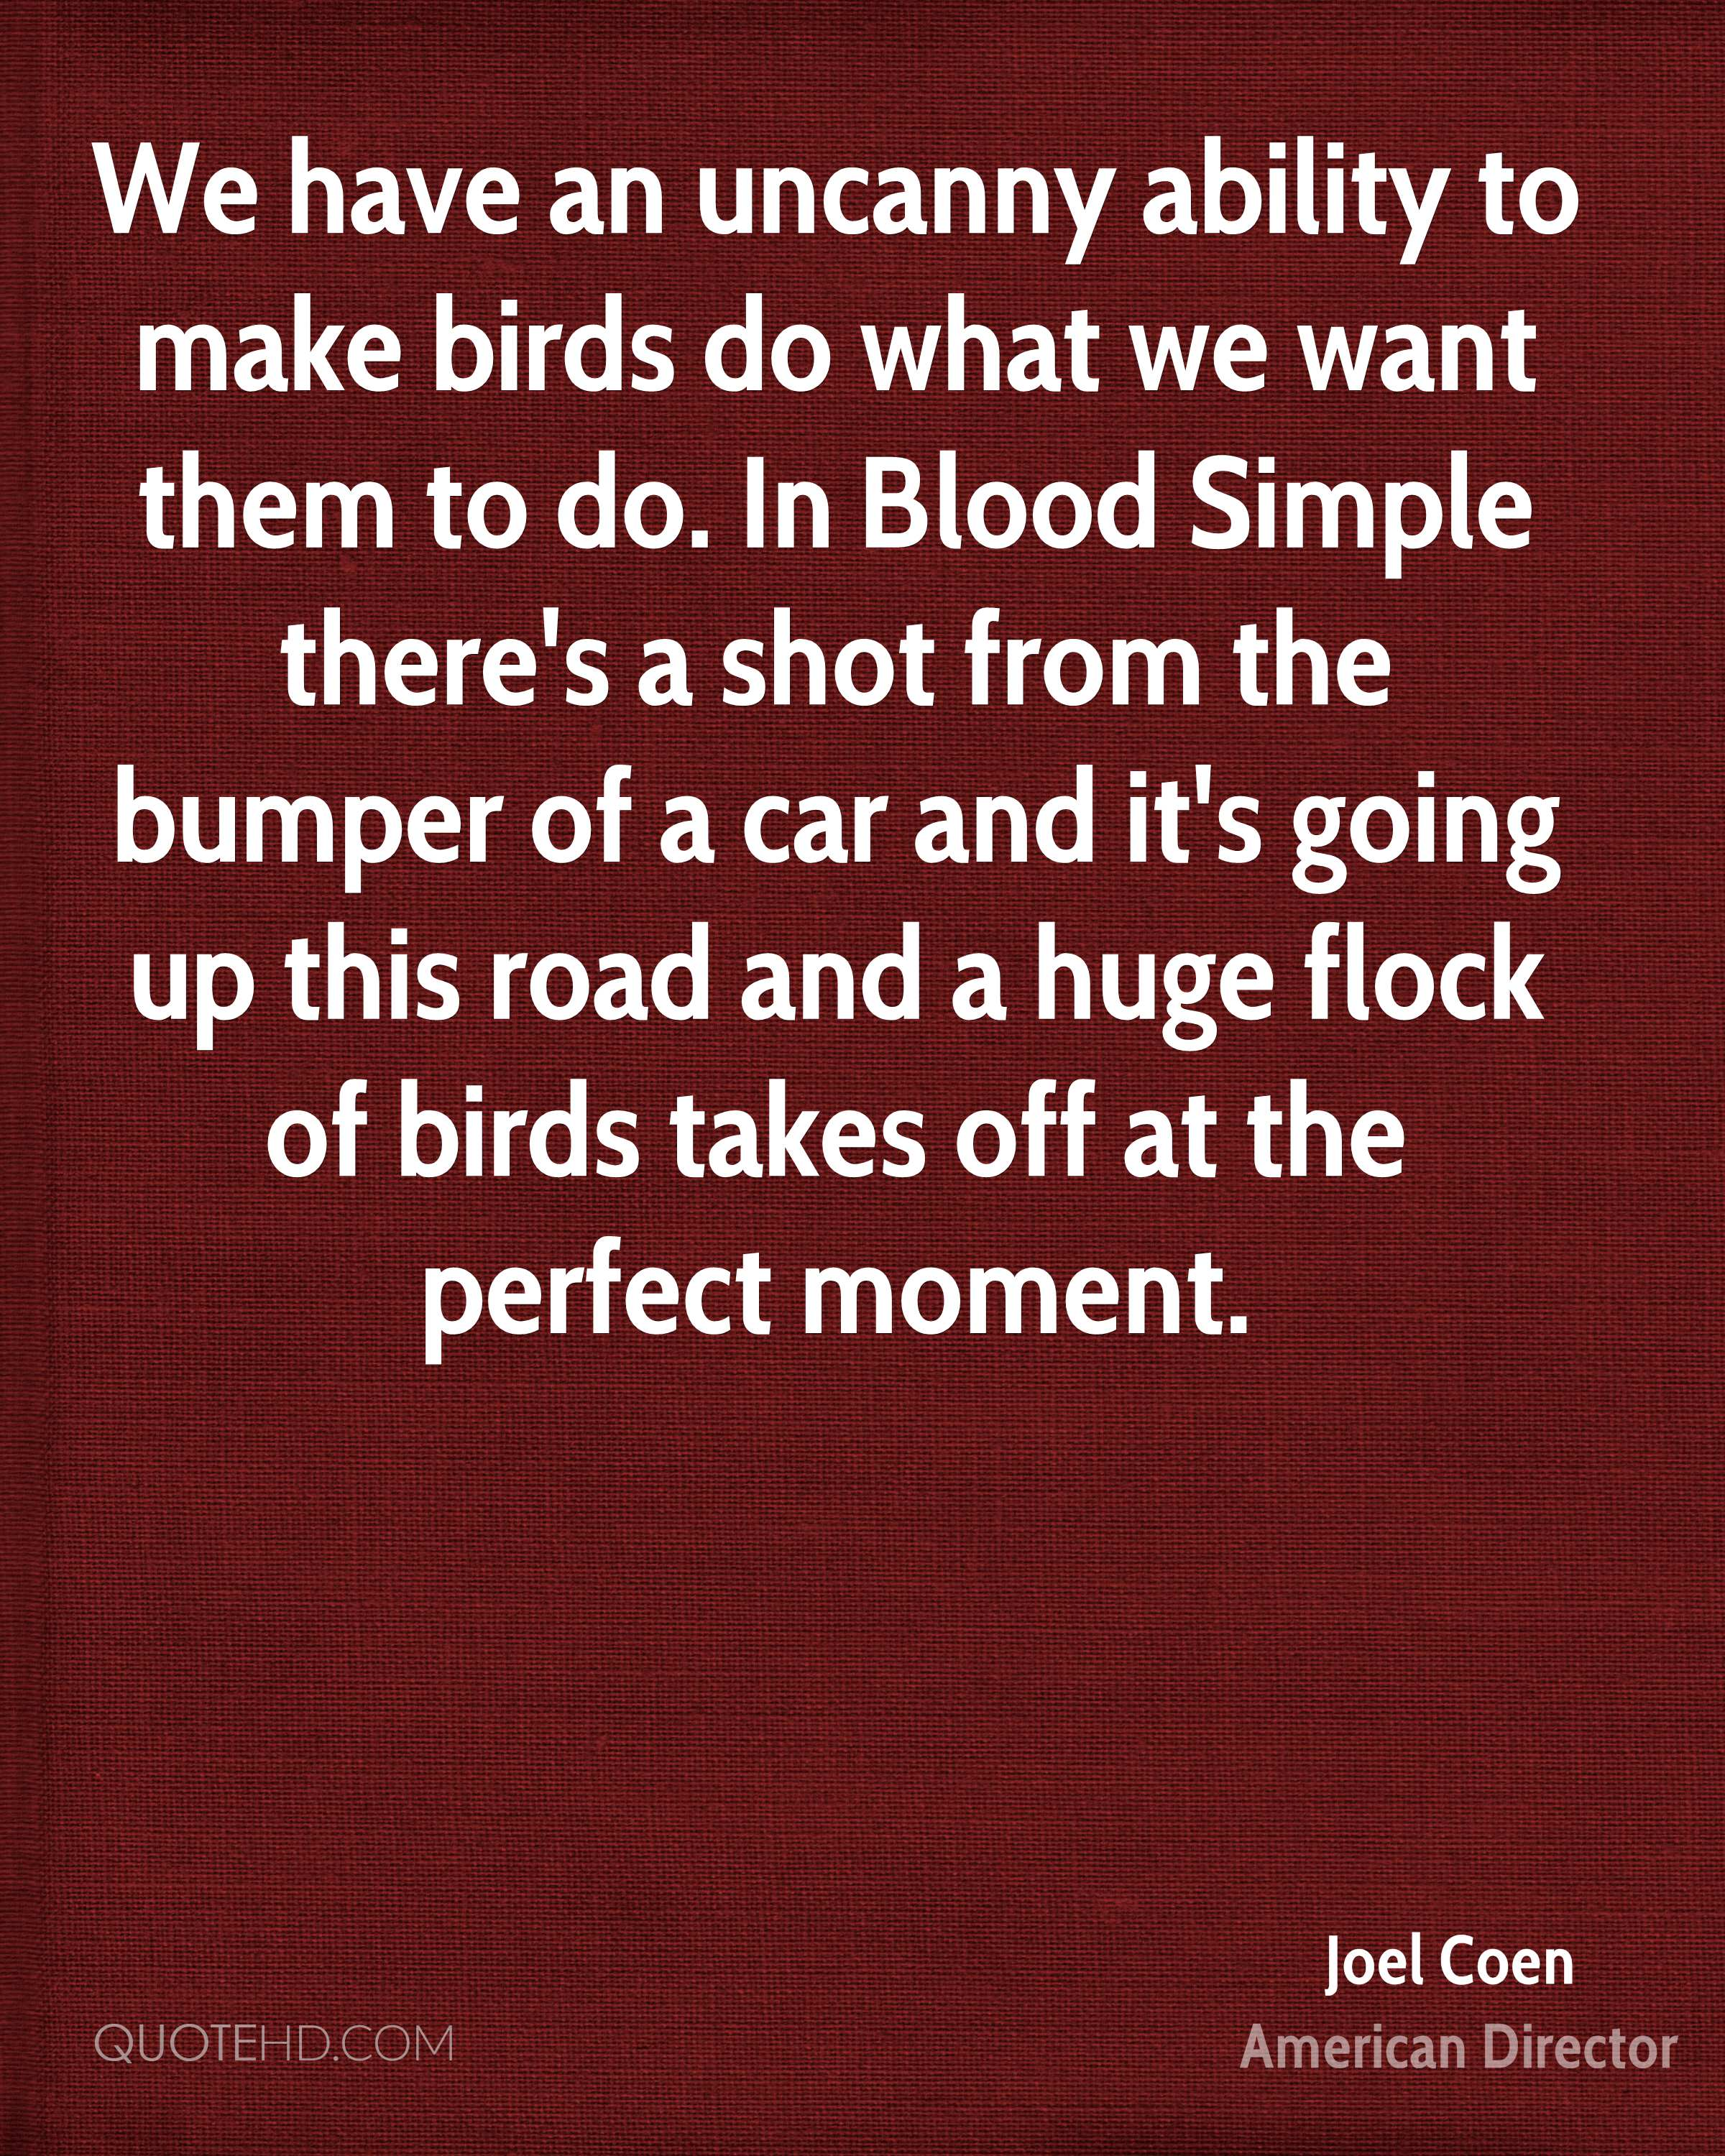 We have an uncanny ability to make birds do what we want them to do. In Blood Simple there's a shot from the bumper of a car and it's going up this road and a huge flock of birds takes off at the perfect moment.